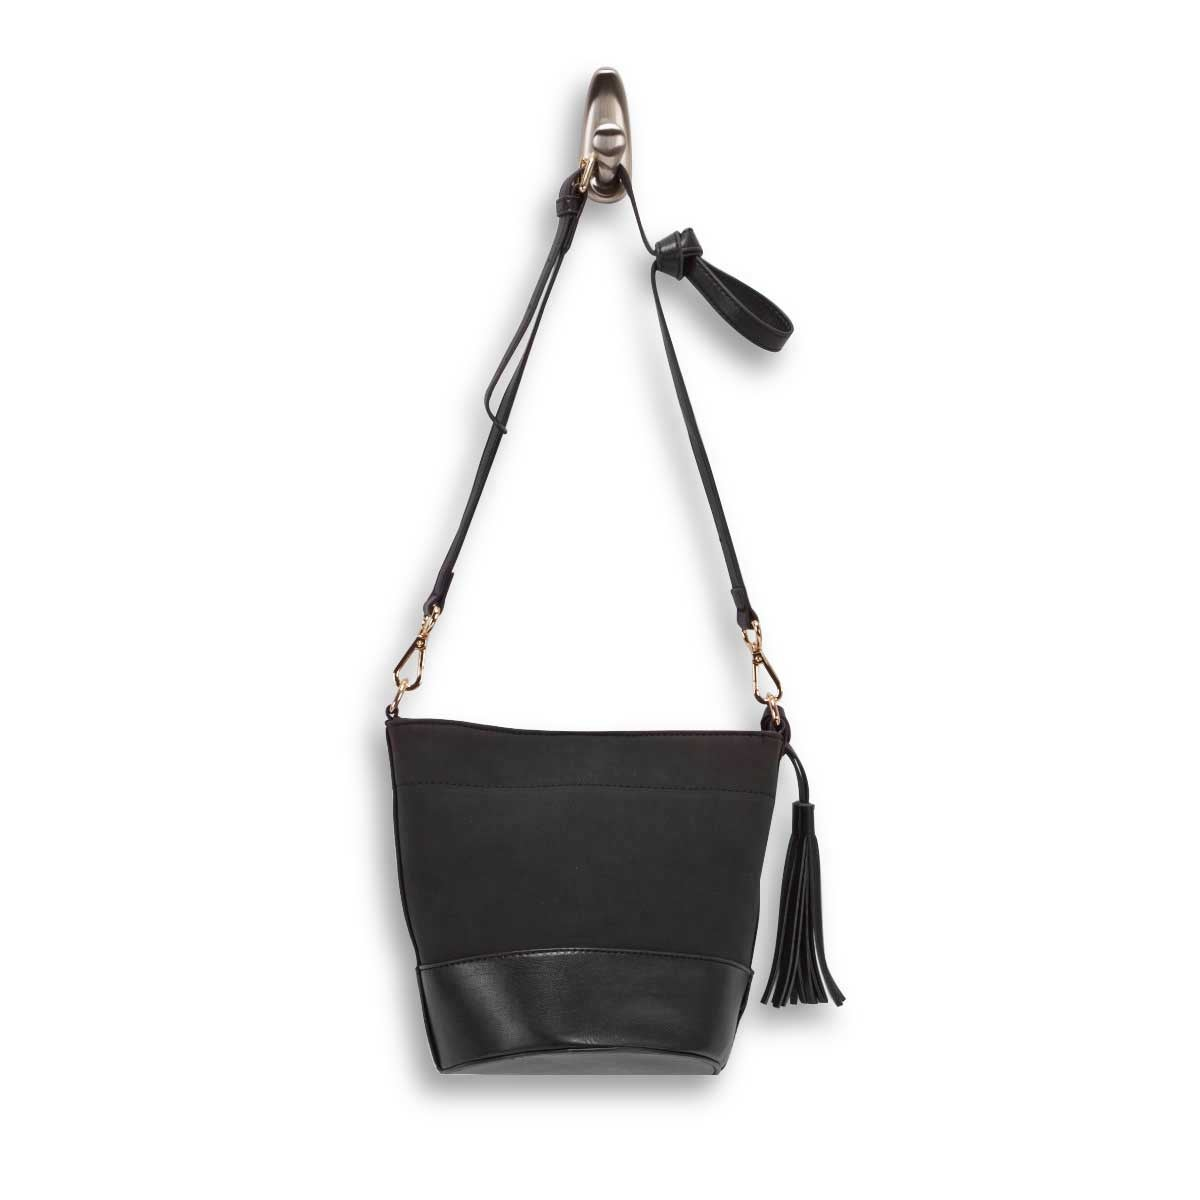 Lds black small bucket crossbody bag